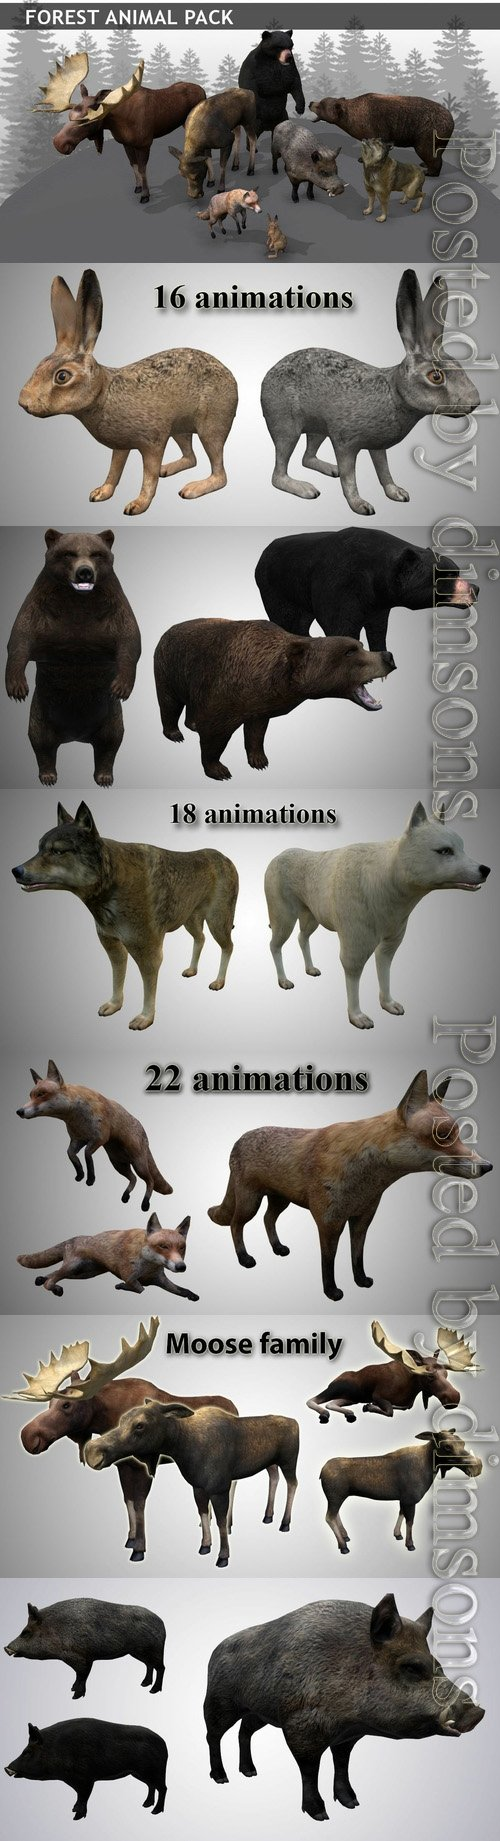 Forest animals pack Low-poly 3D model